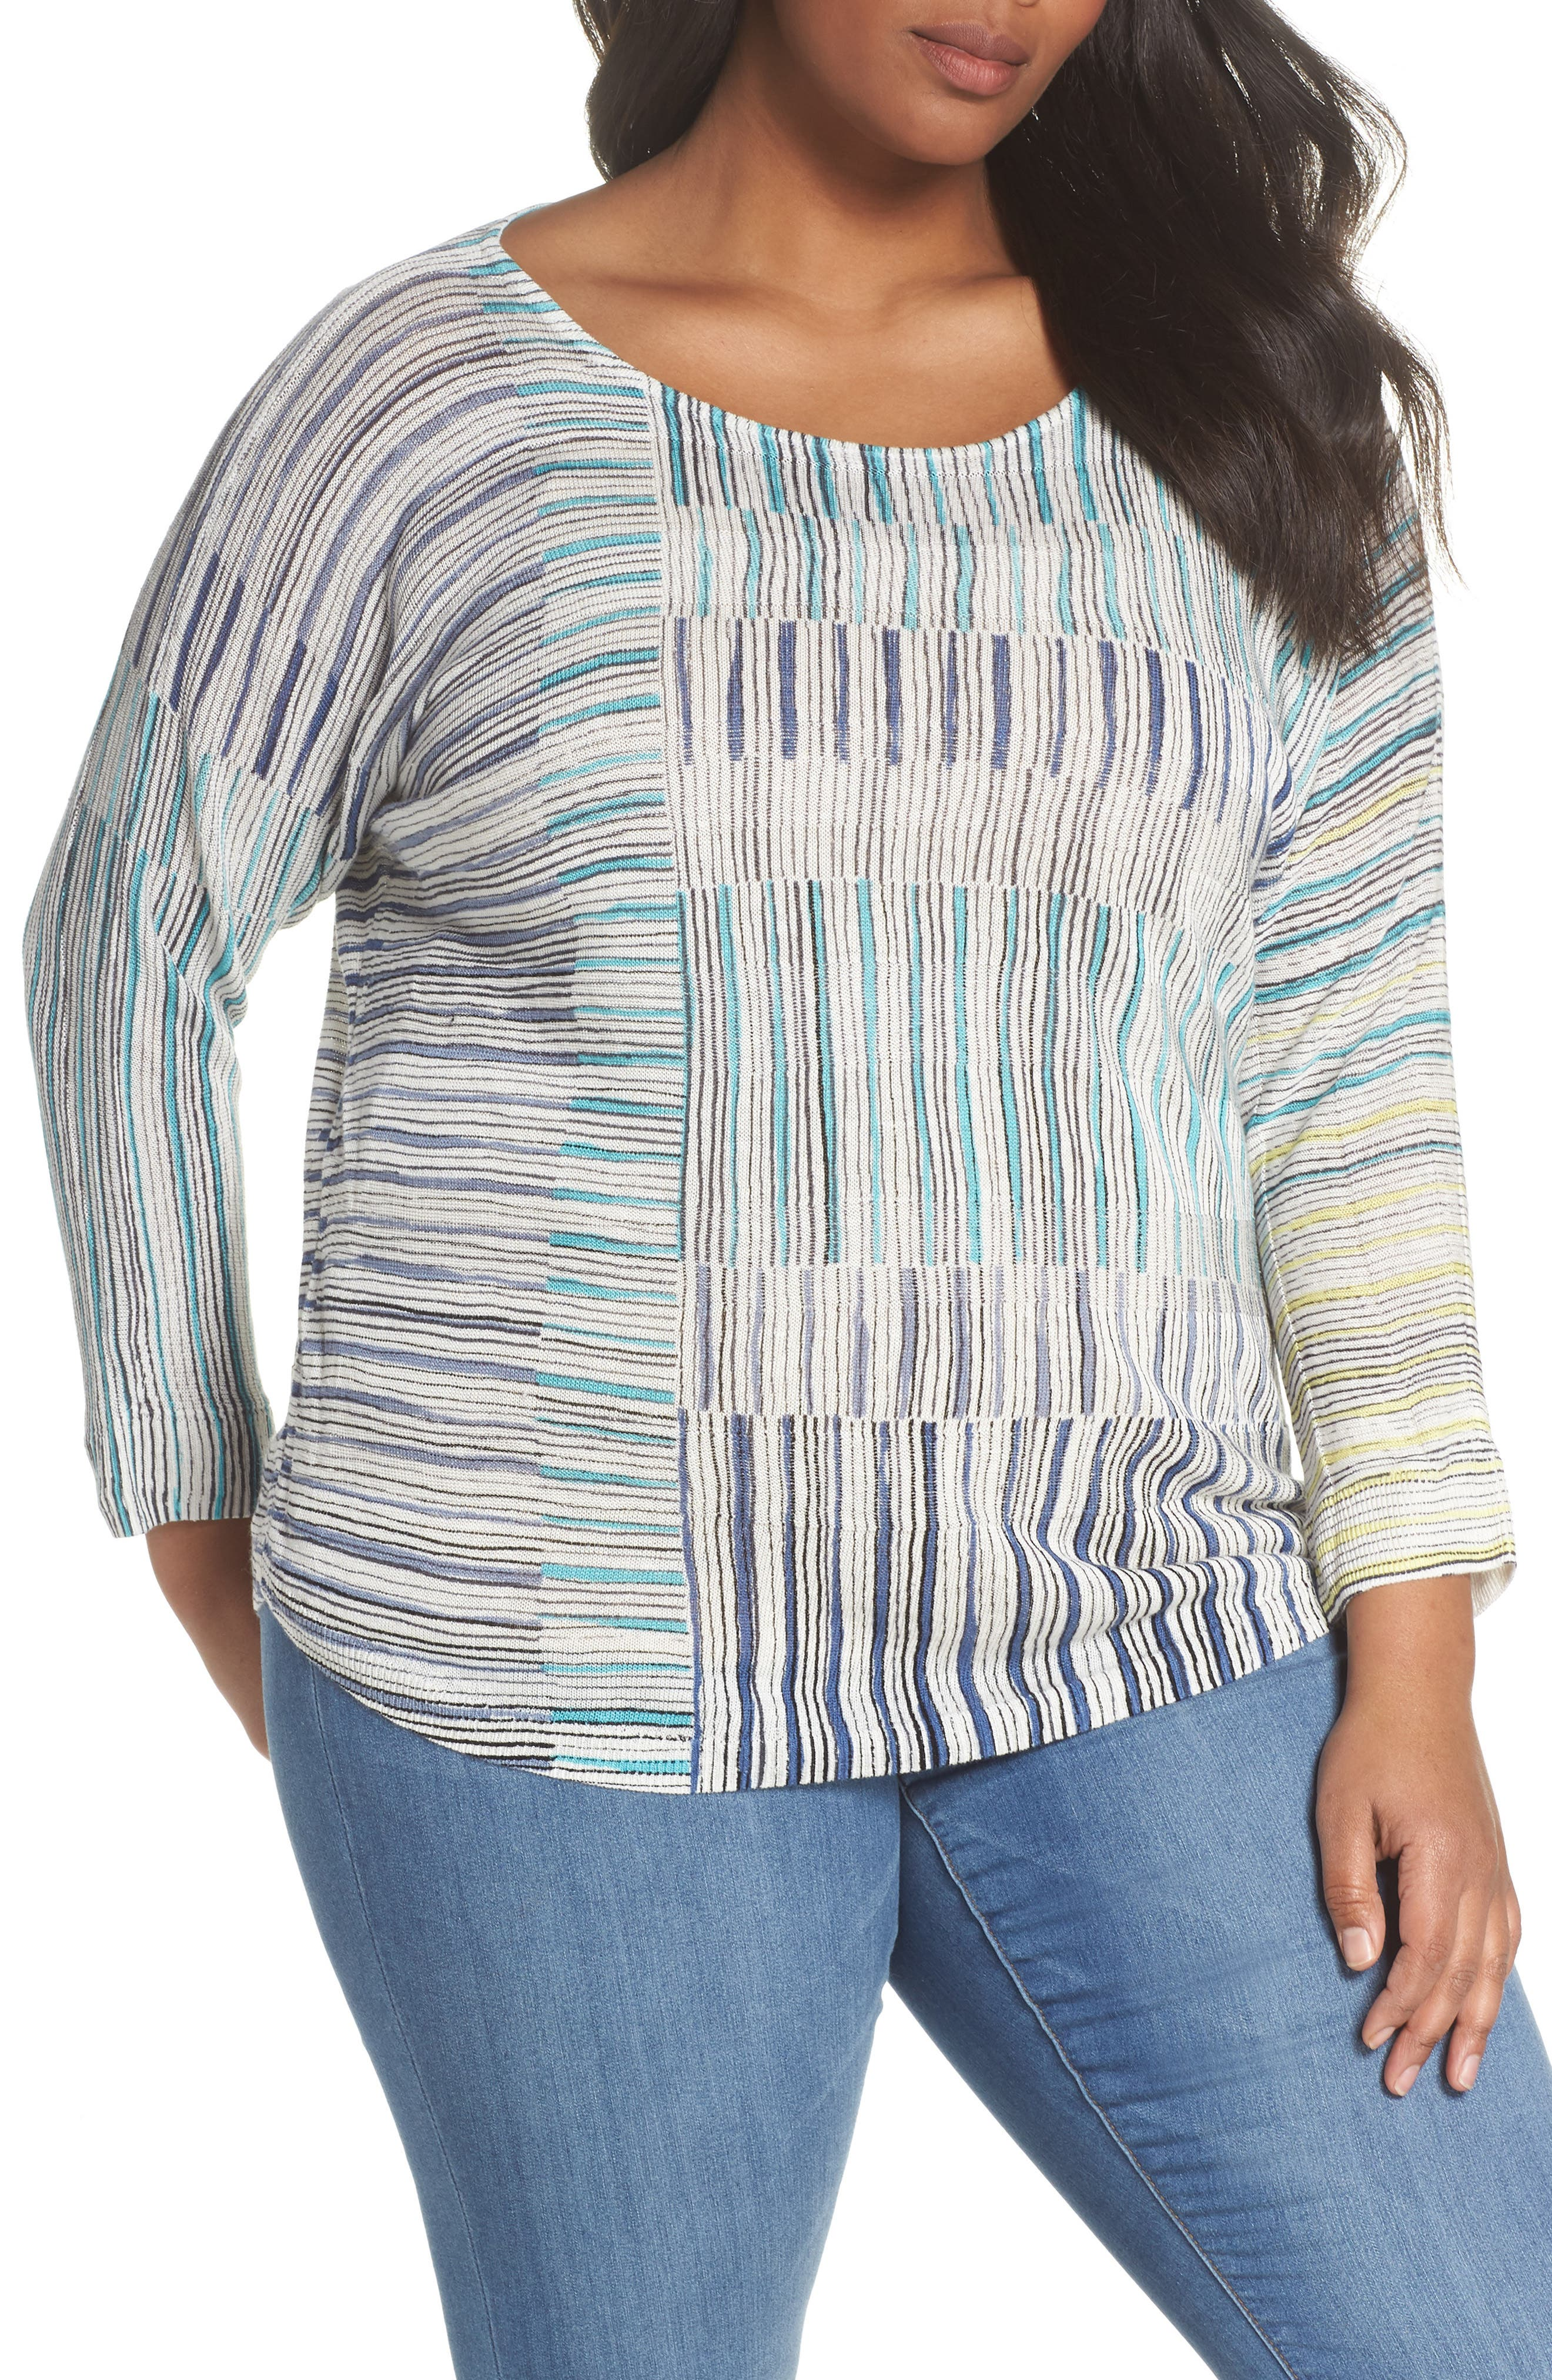 Alternate Image 1 Selected - NIC+ZOE Sea Wall Stripe Scoop Neck Top (Plus Size)